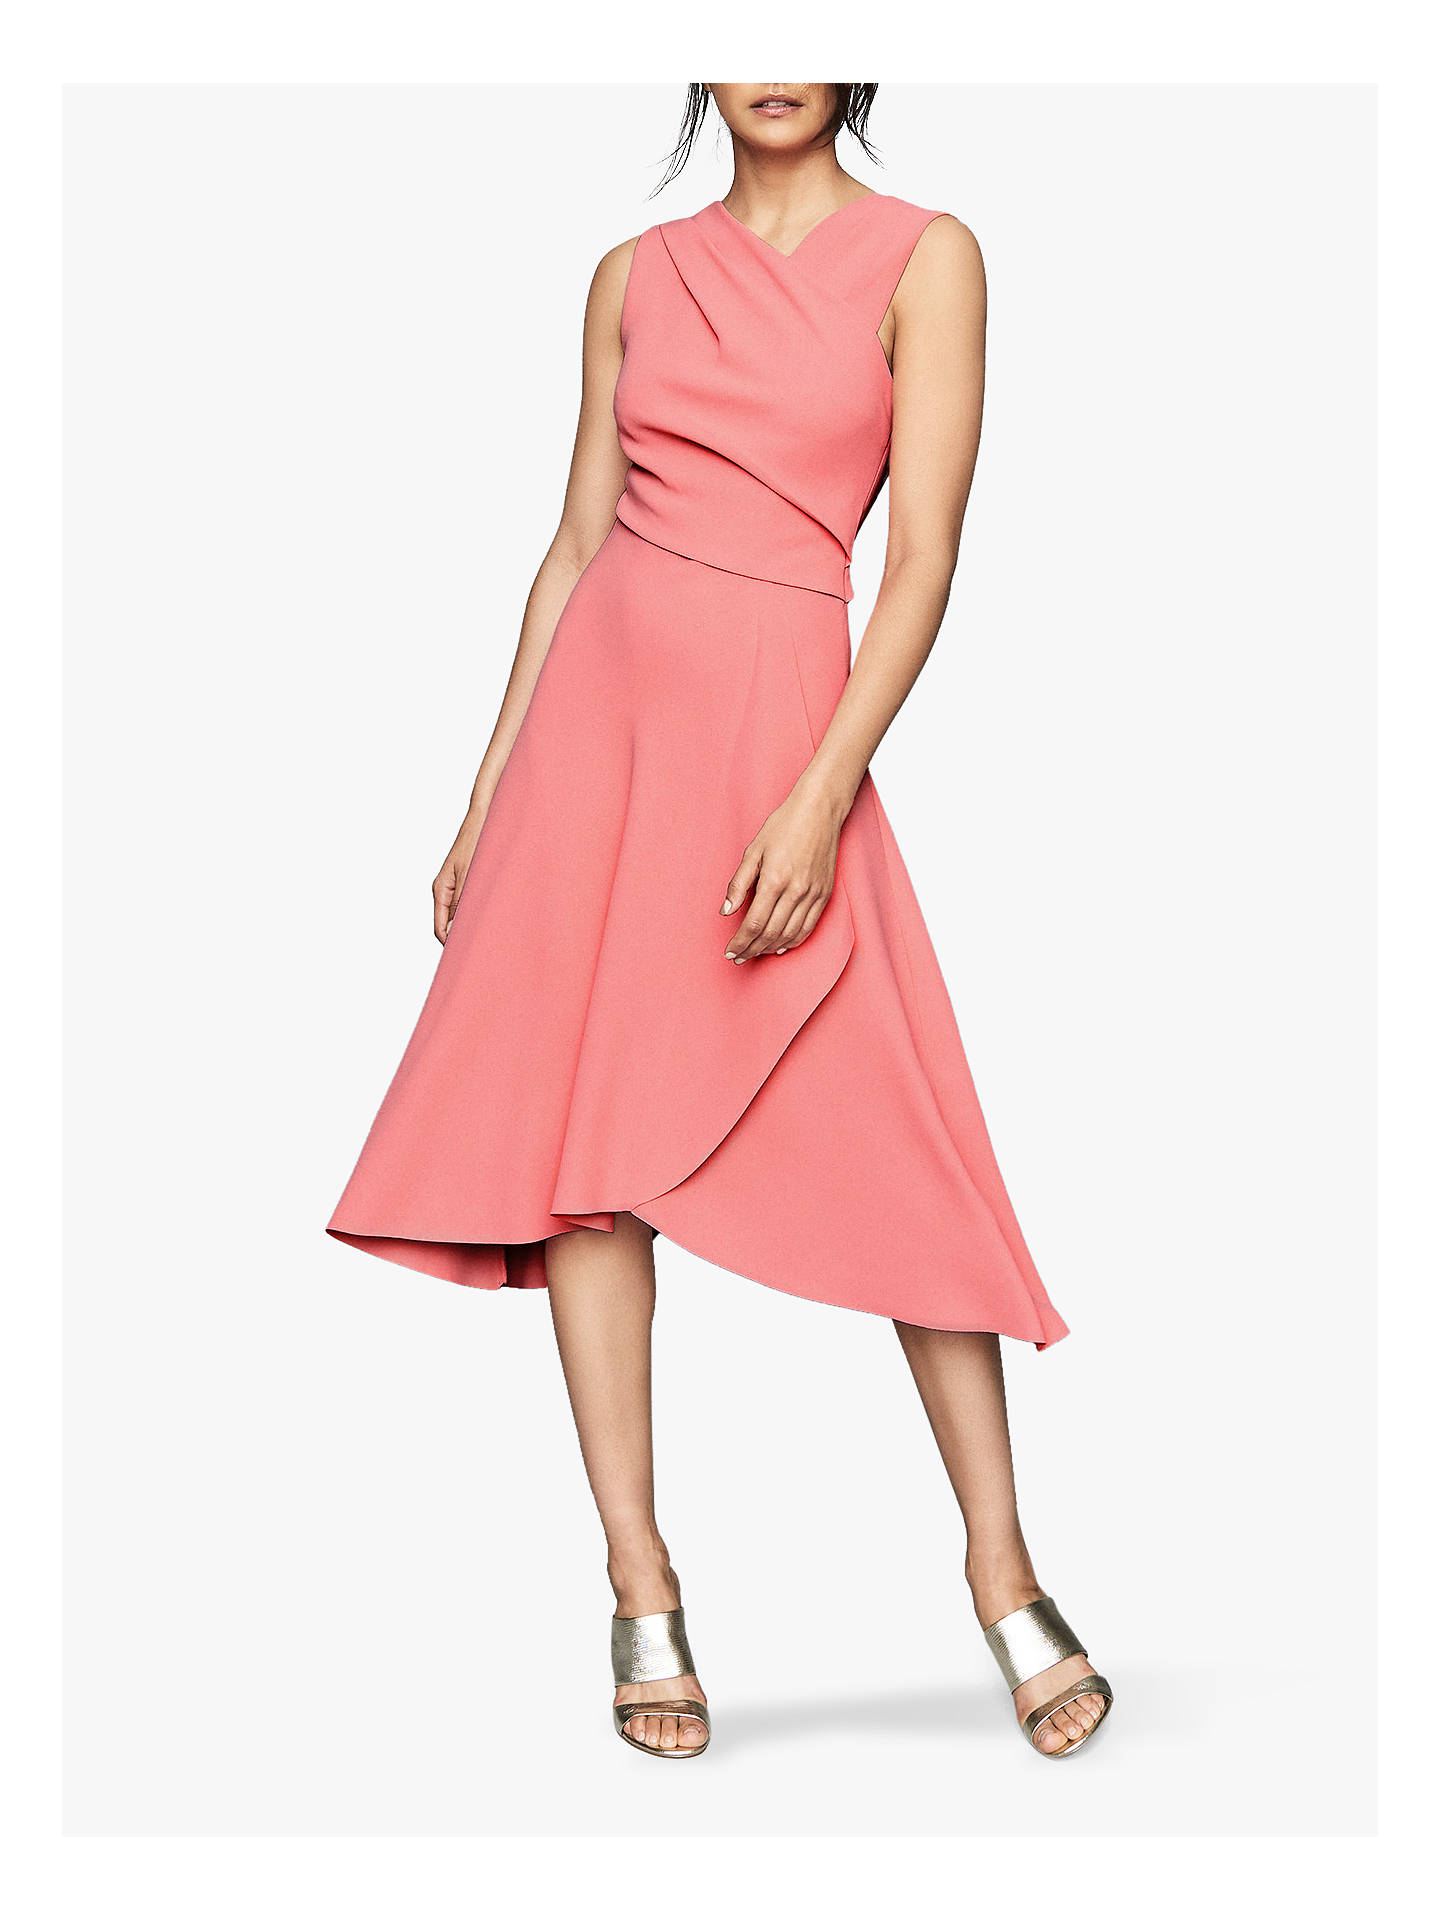 Reiss Marling Wrap Dress, Pink by Reiss